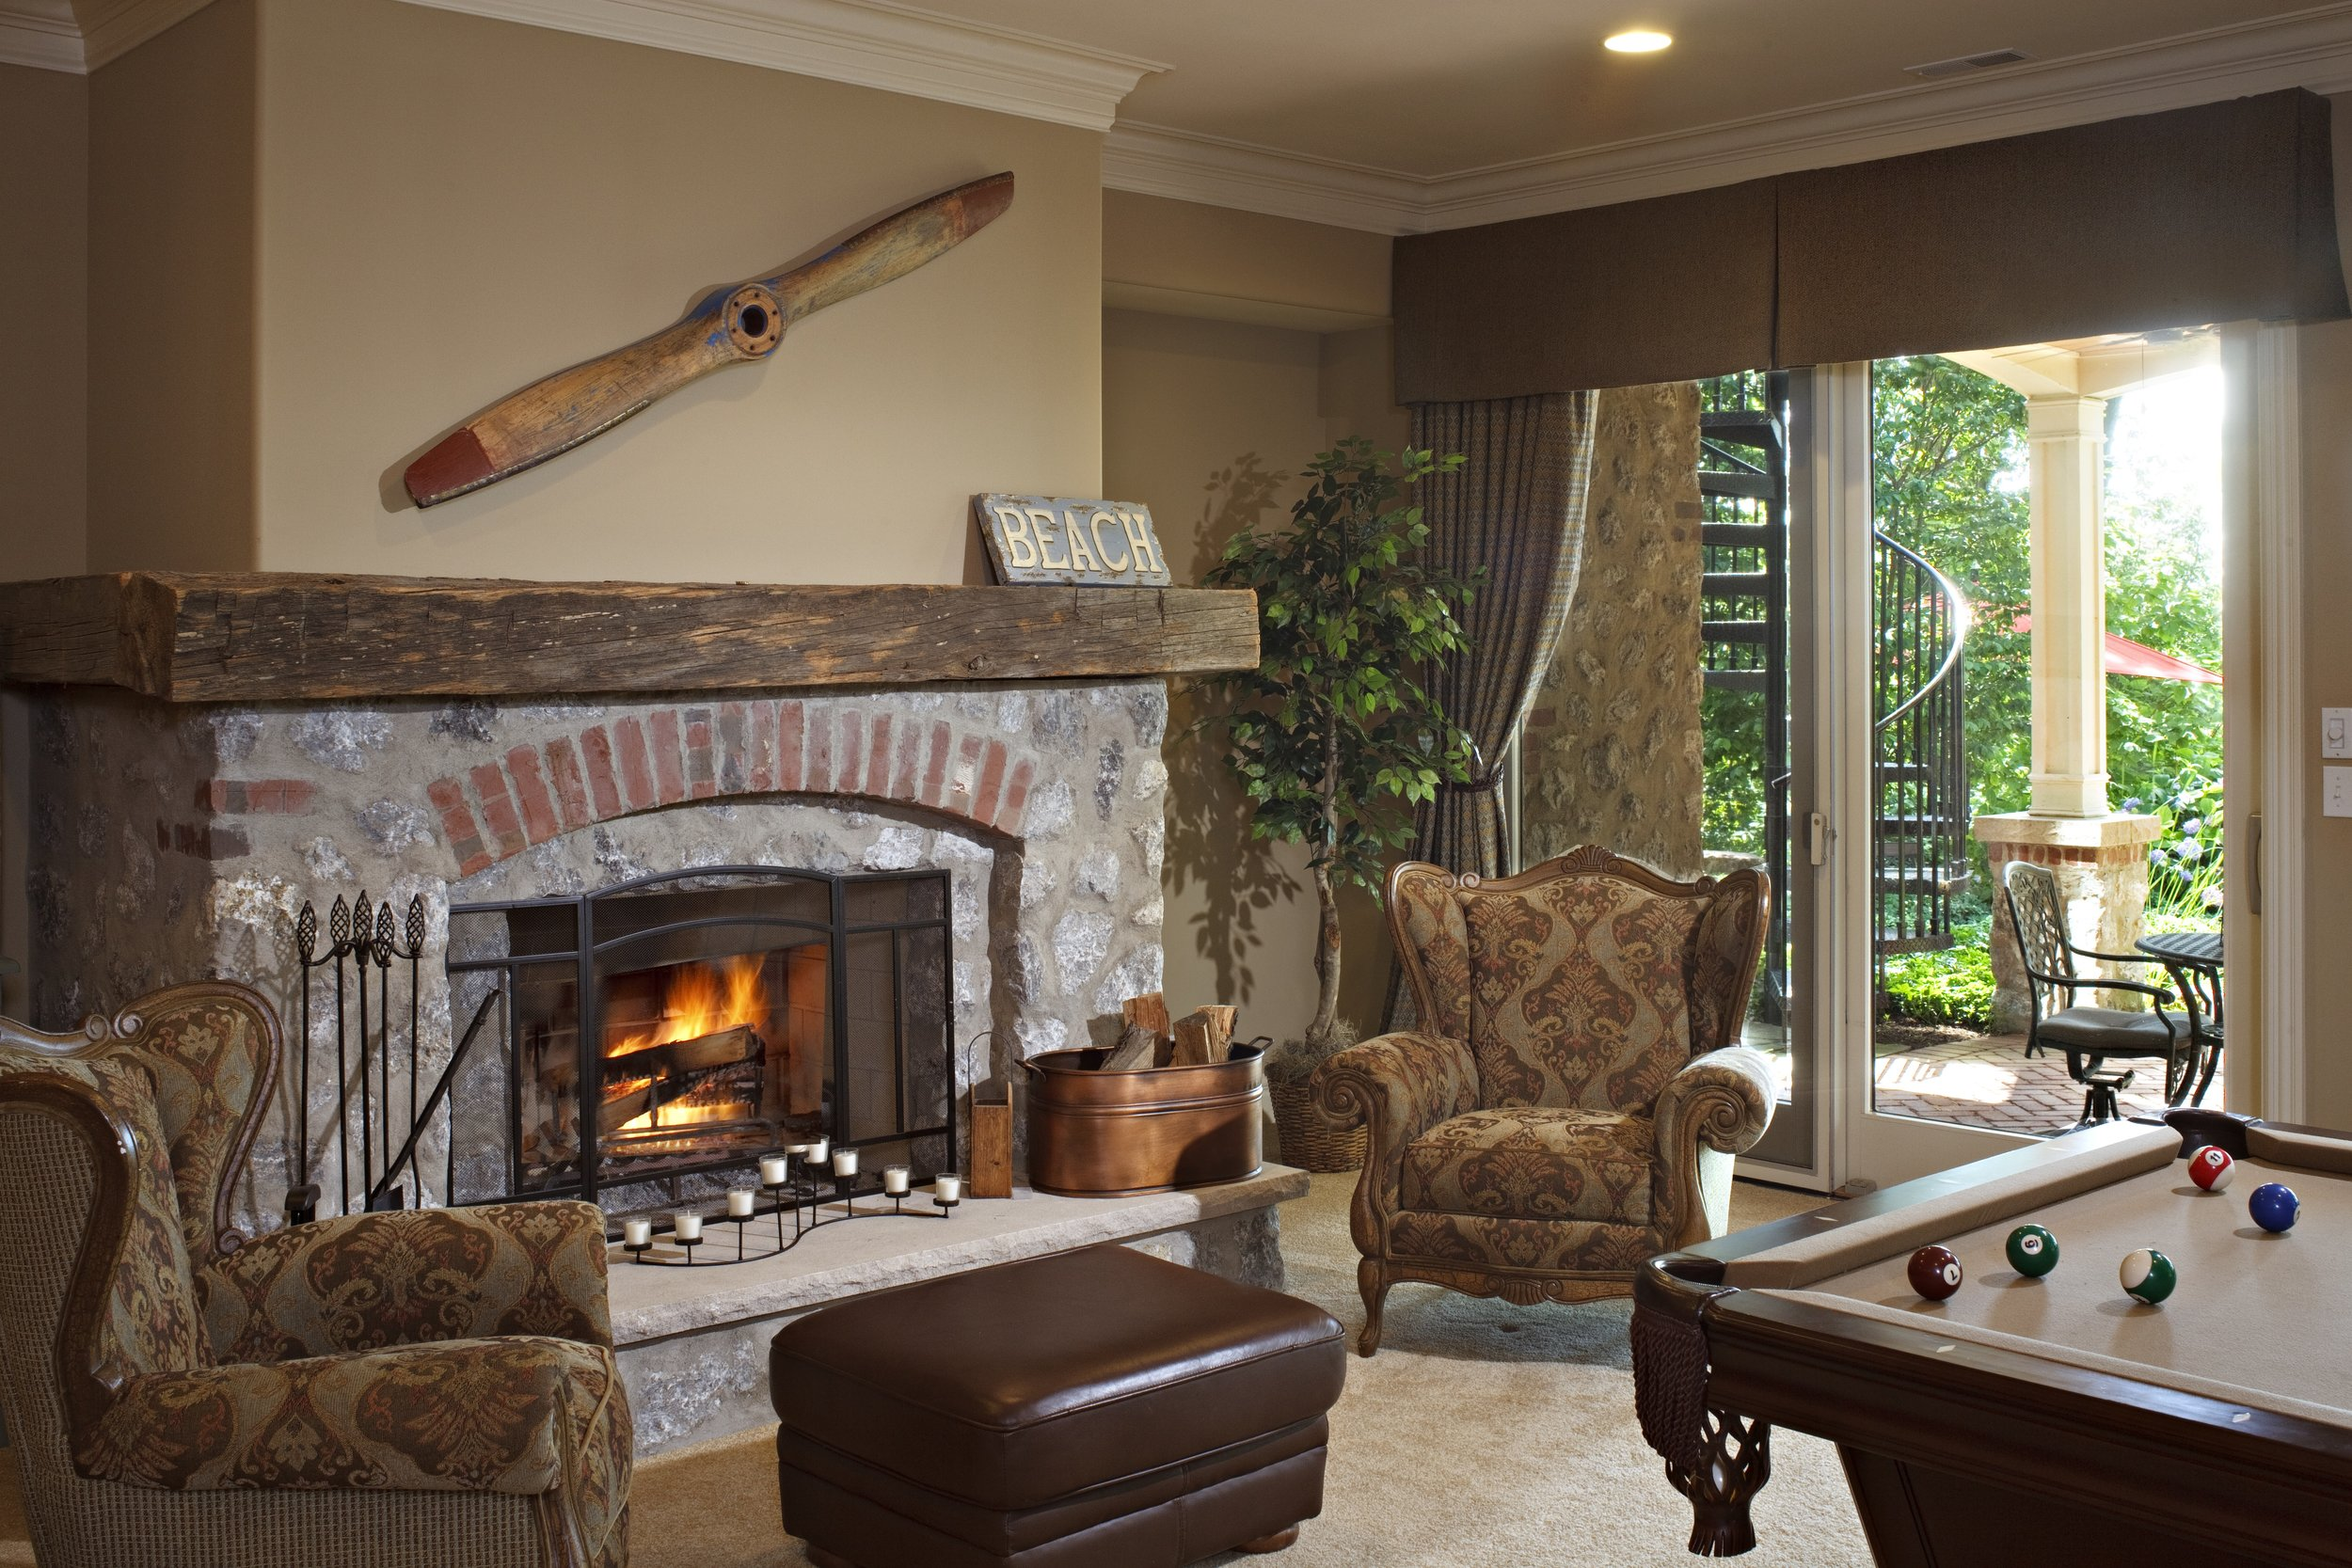 BASEMENT STONE FIREPLACE IN WALKOUT BASEMENT.  FINISHED BASEMENT IN ST. CHARLES IL.